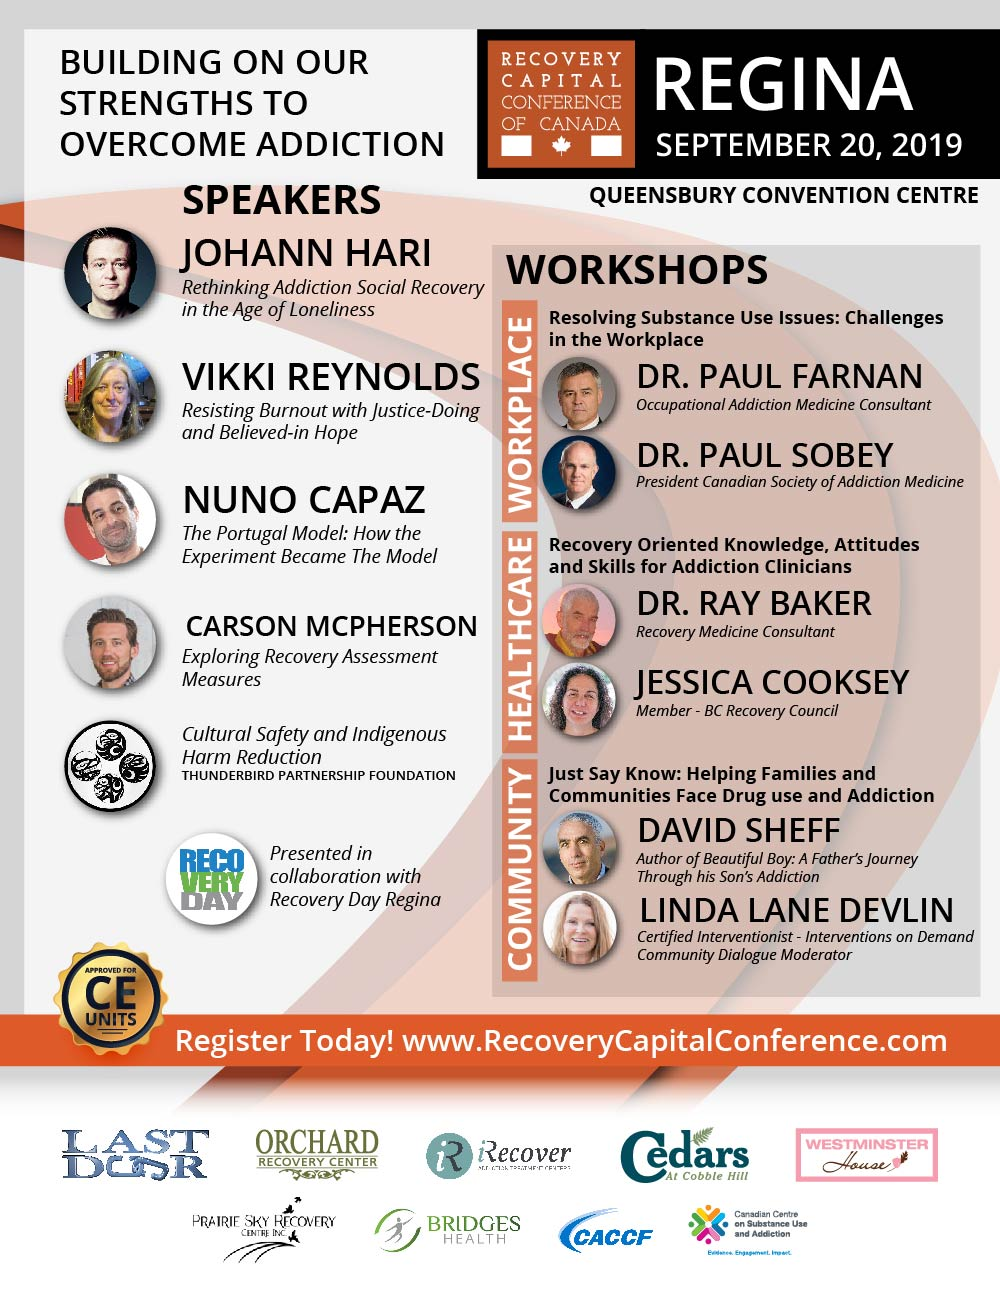 Recovery Capital Conference Regina